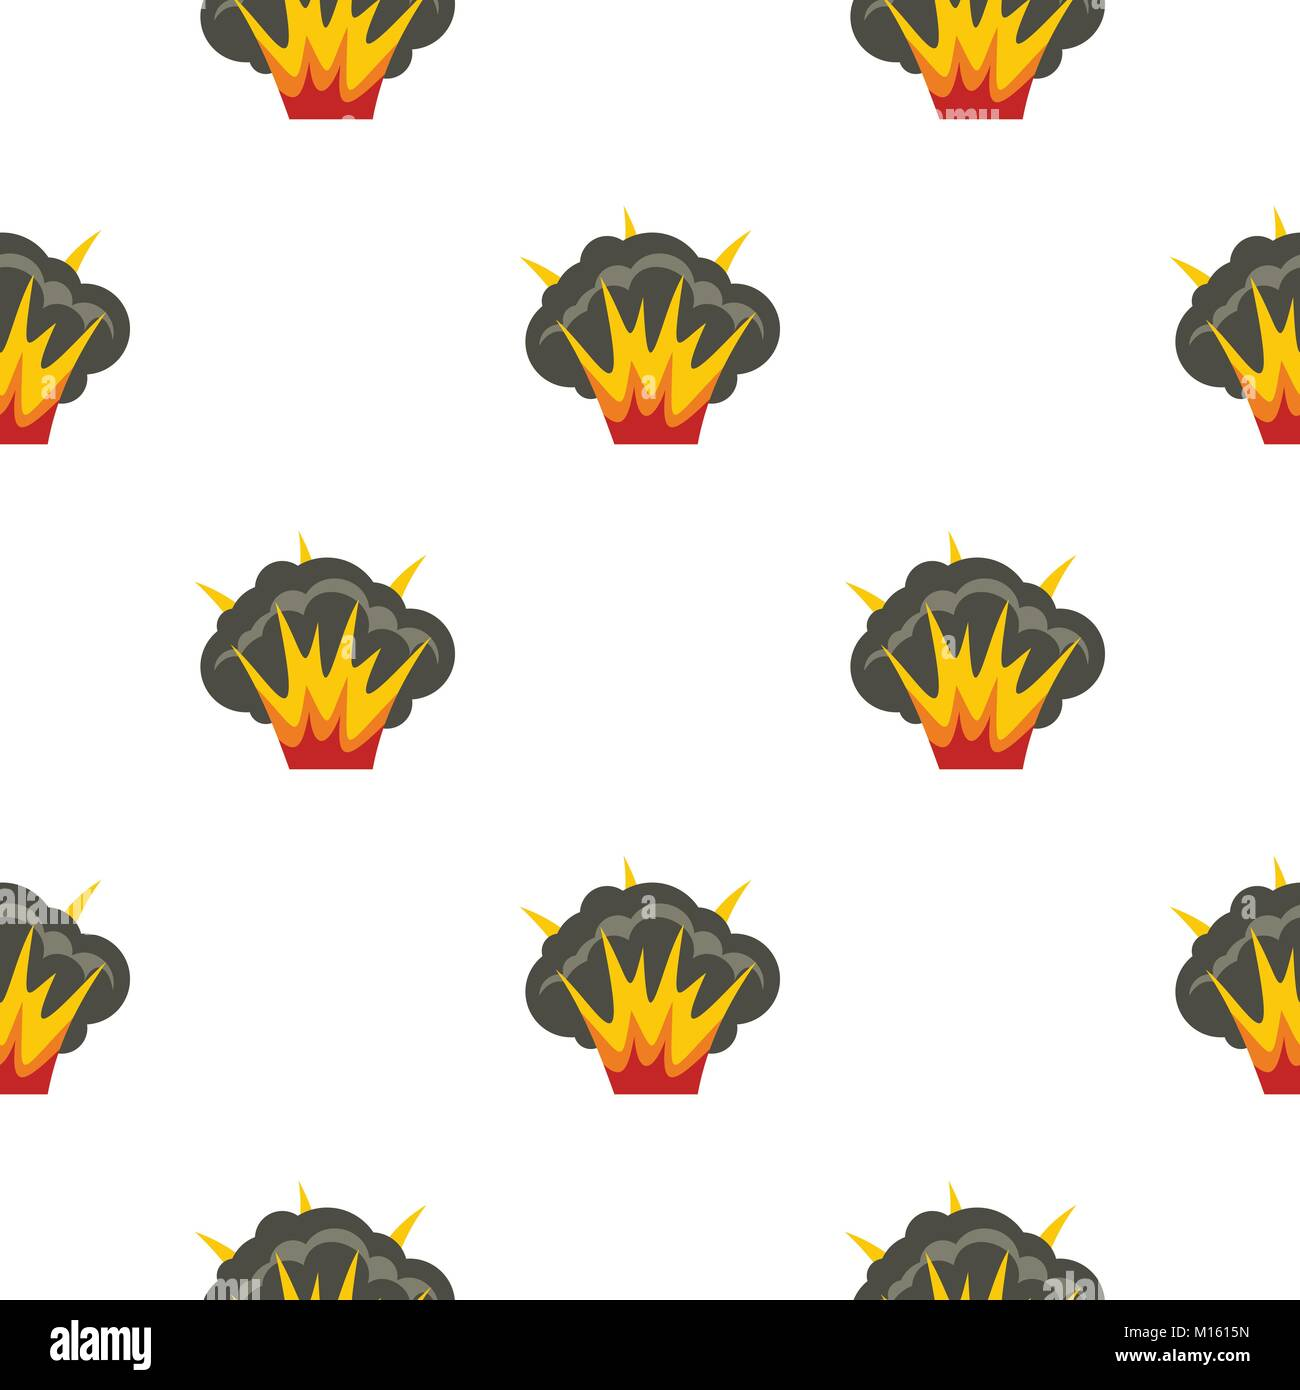 Projectile explosion pattern seamless - Stock Image